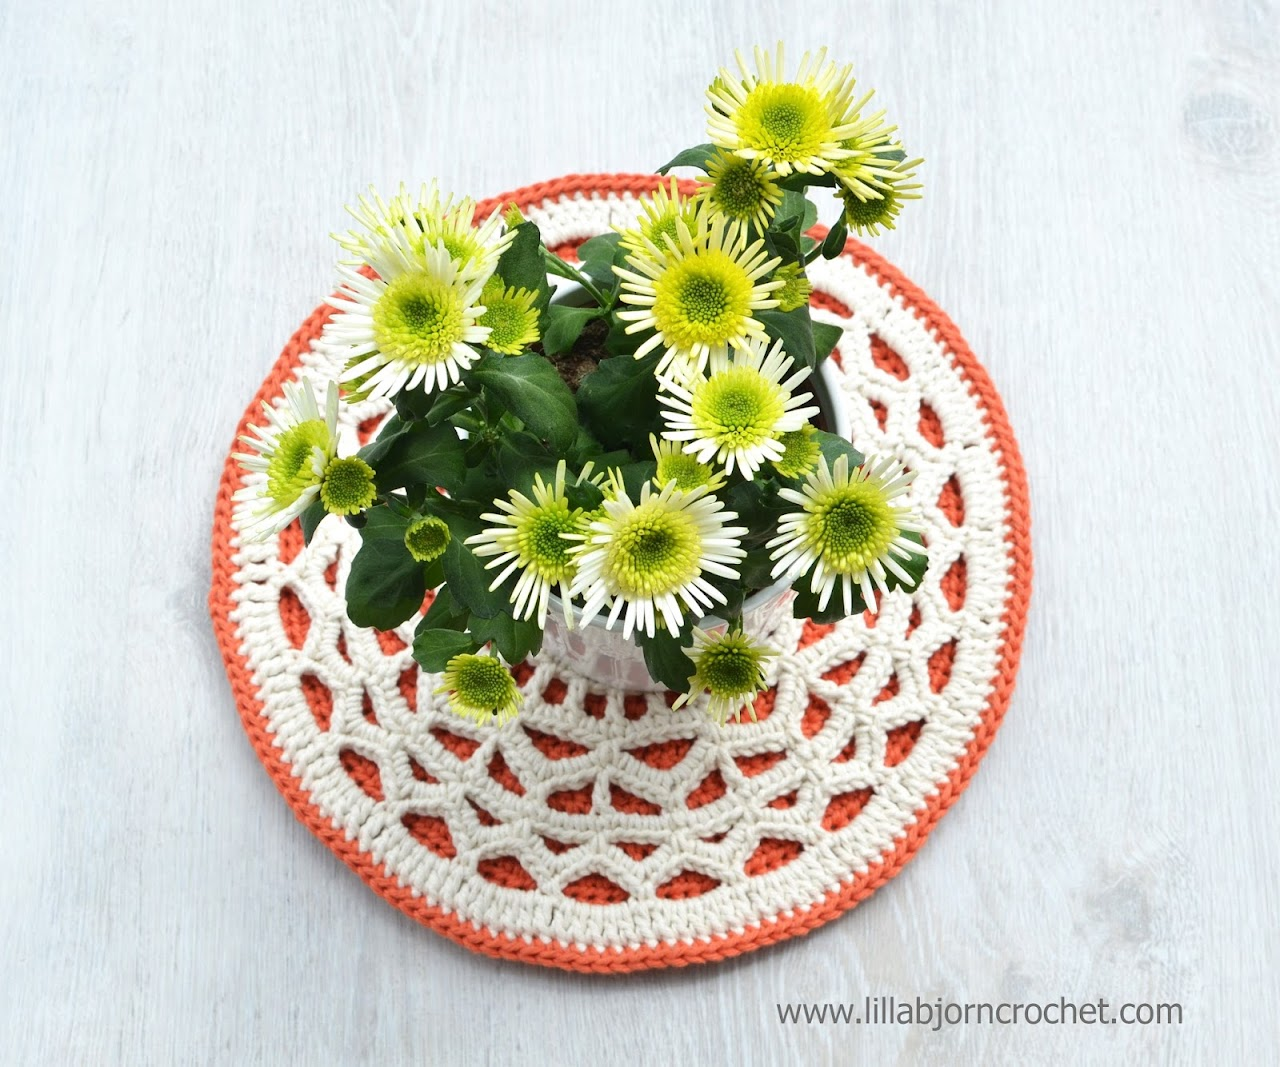 Geometric crochet mandala. And easy and quick to make project of a potholder, hot pad, pillow applique or trivet. Original design by Lilla Bjorn crochet.